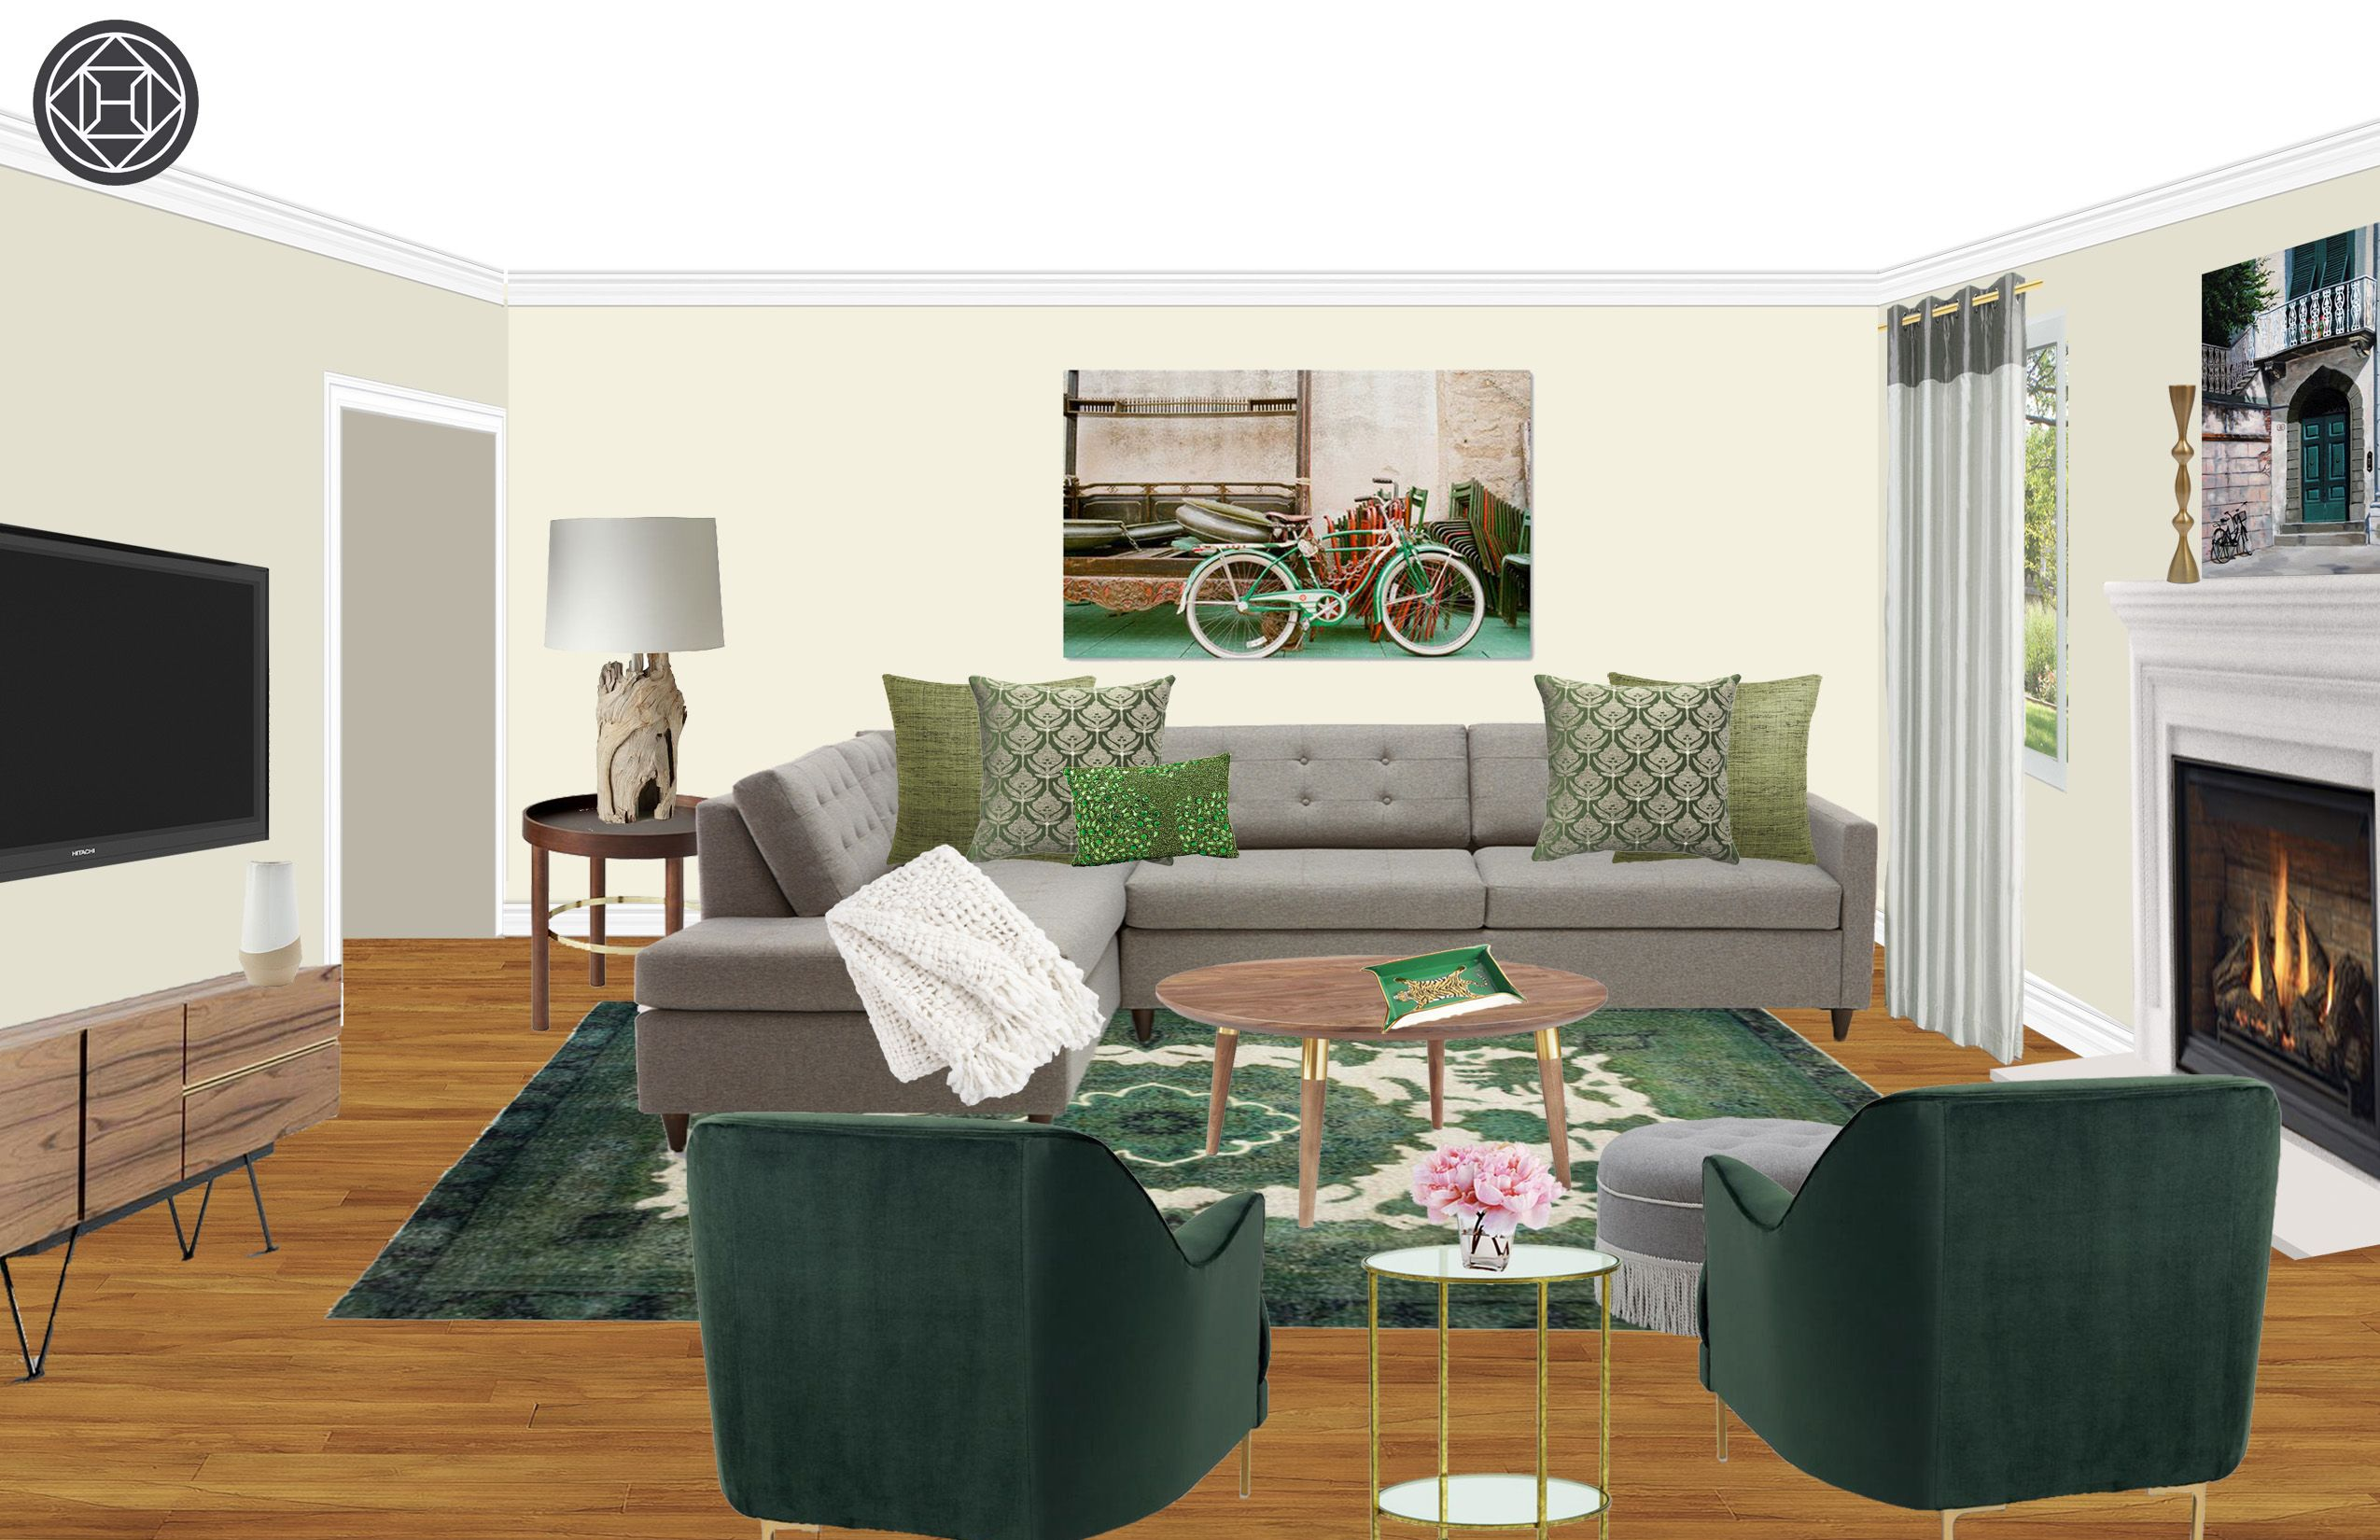 contemporary, modern, eclectic, bohemian, glam, midcentury modern living room designhavenly